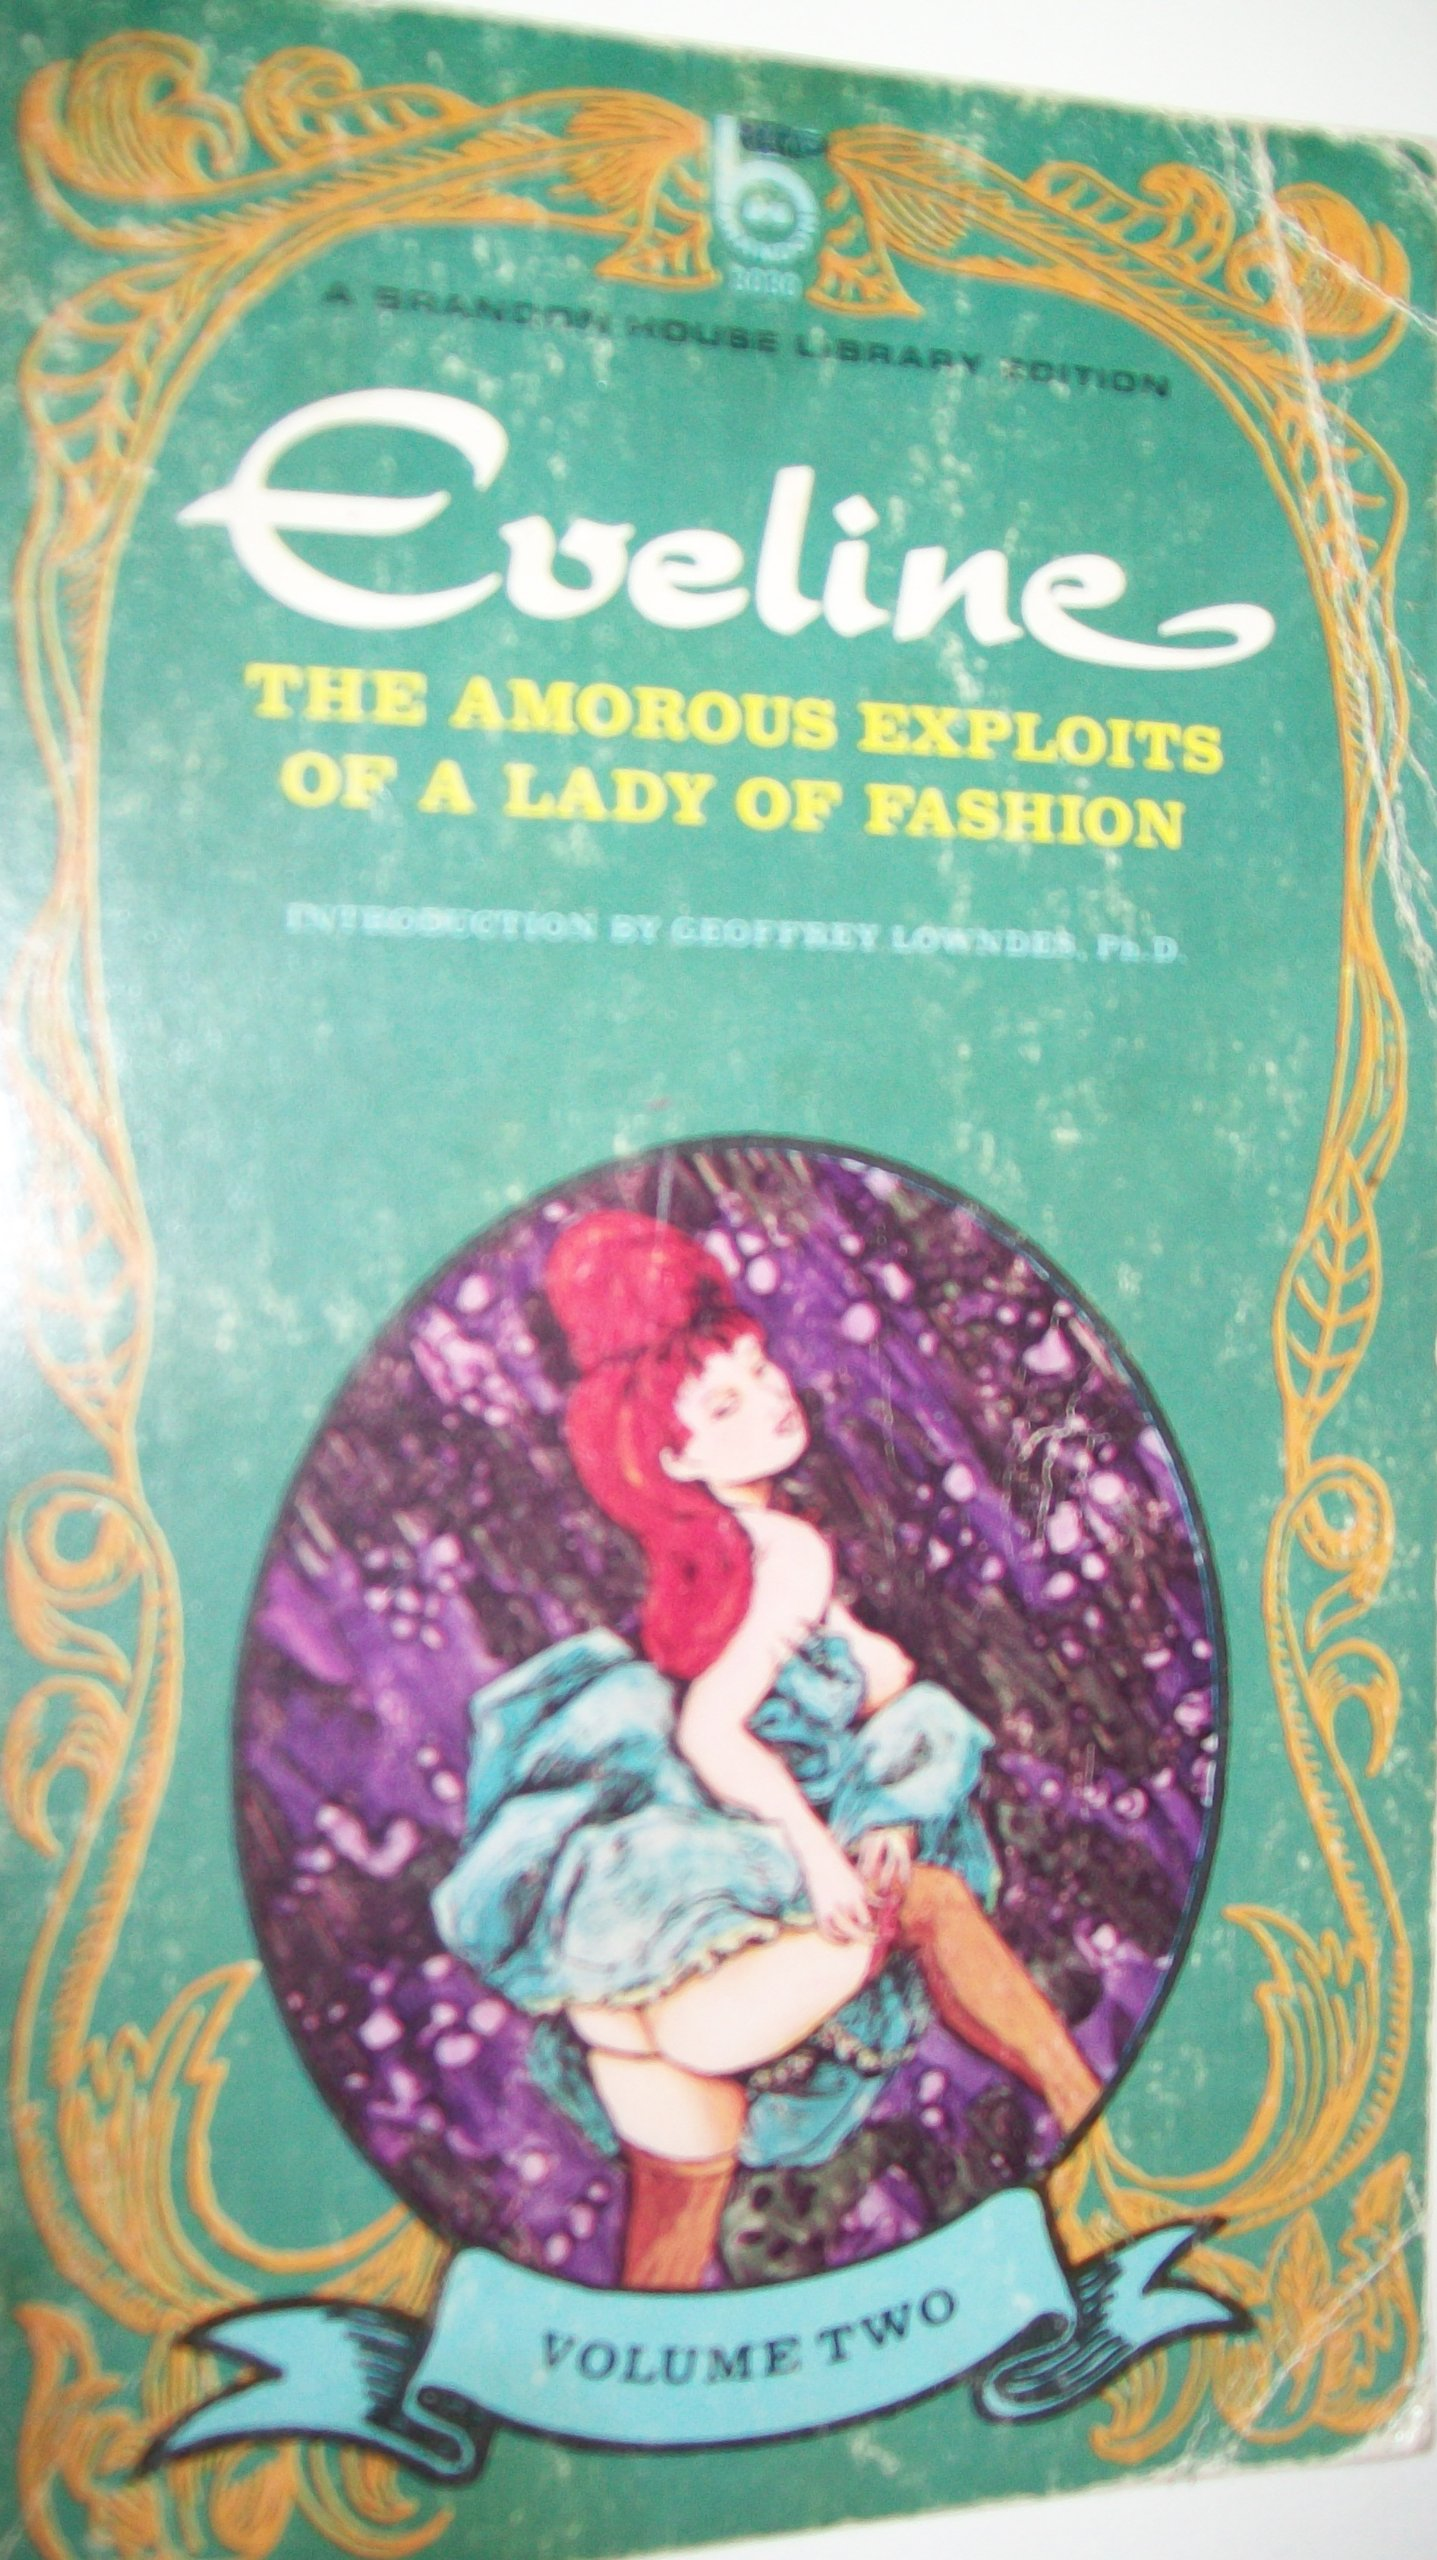 Eveline: The Amorous Exploits Of A Lady Of Fashion - Volume Two, Geoffrey Lowndes, Ph.D. (Introduction)